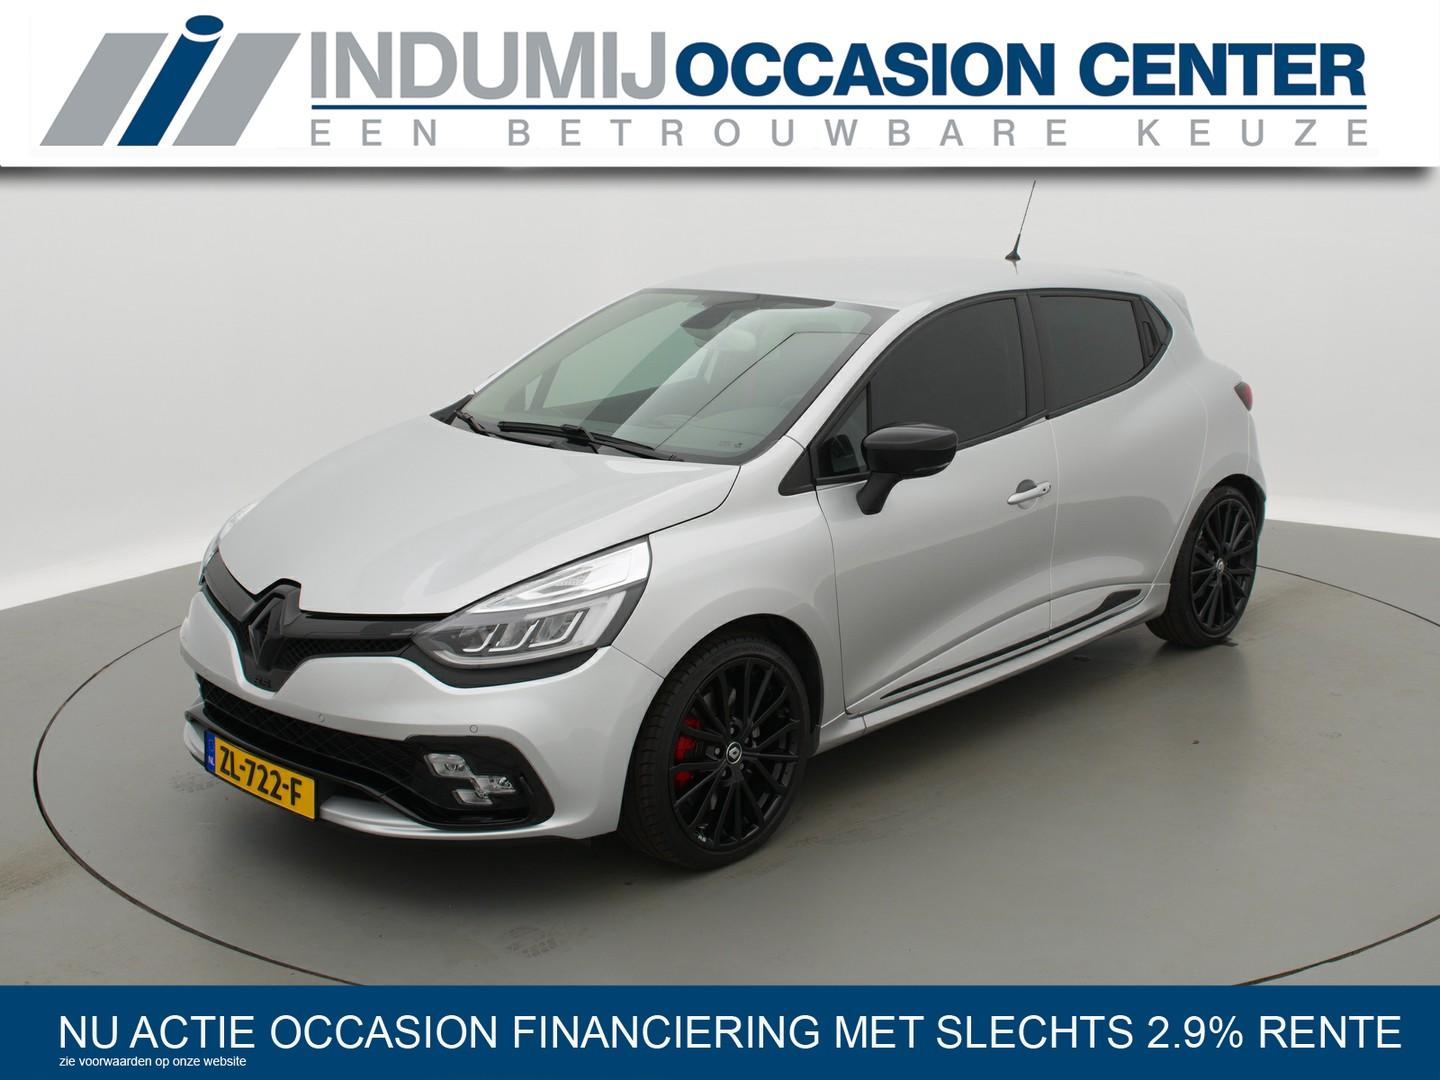 Renault Clio Rs 200 edc automaat // akrapovic / black pack / pack cup chassis / leder / r.s.